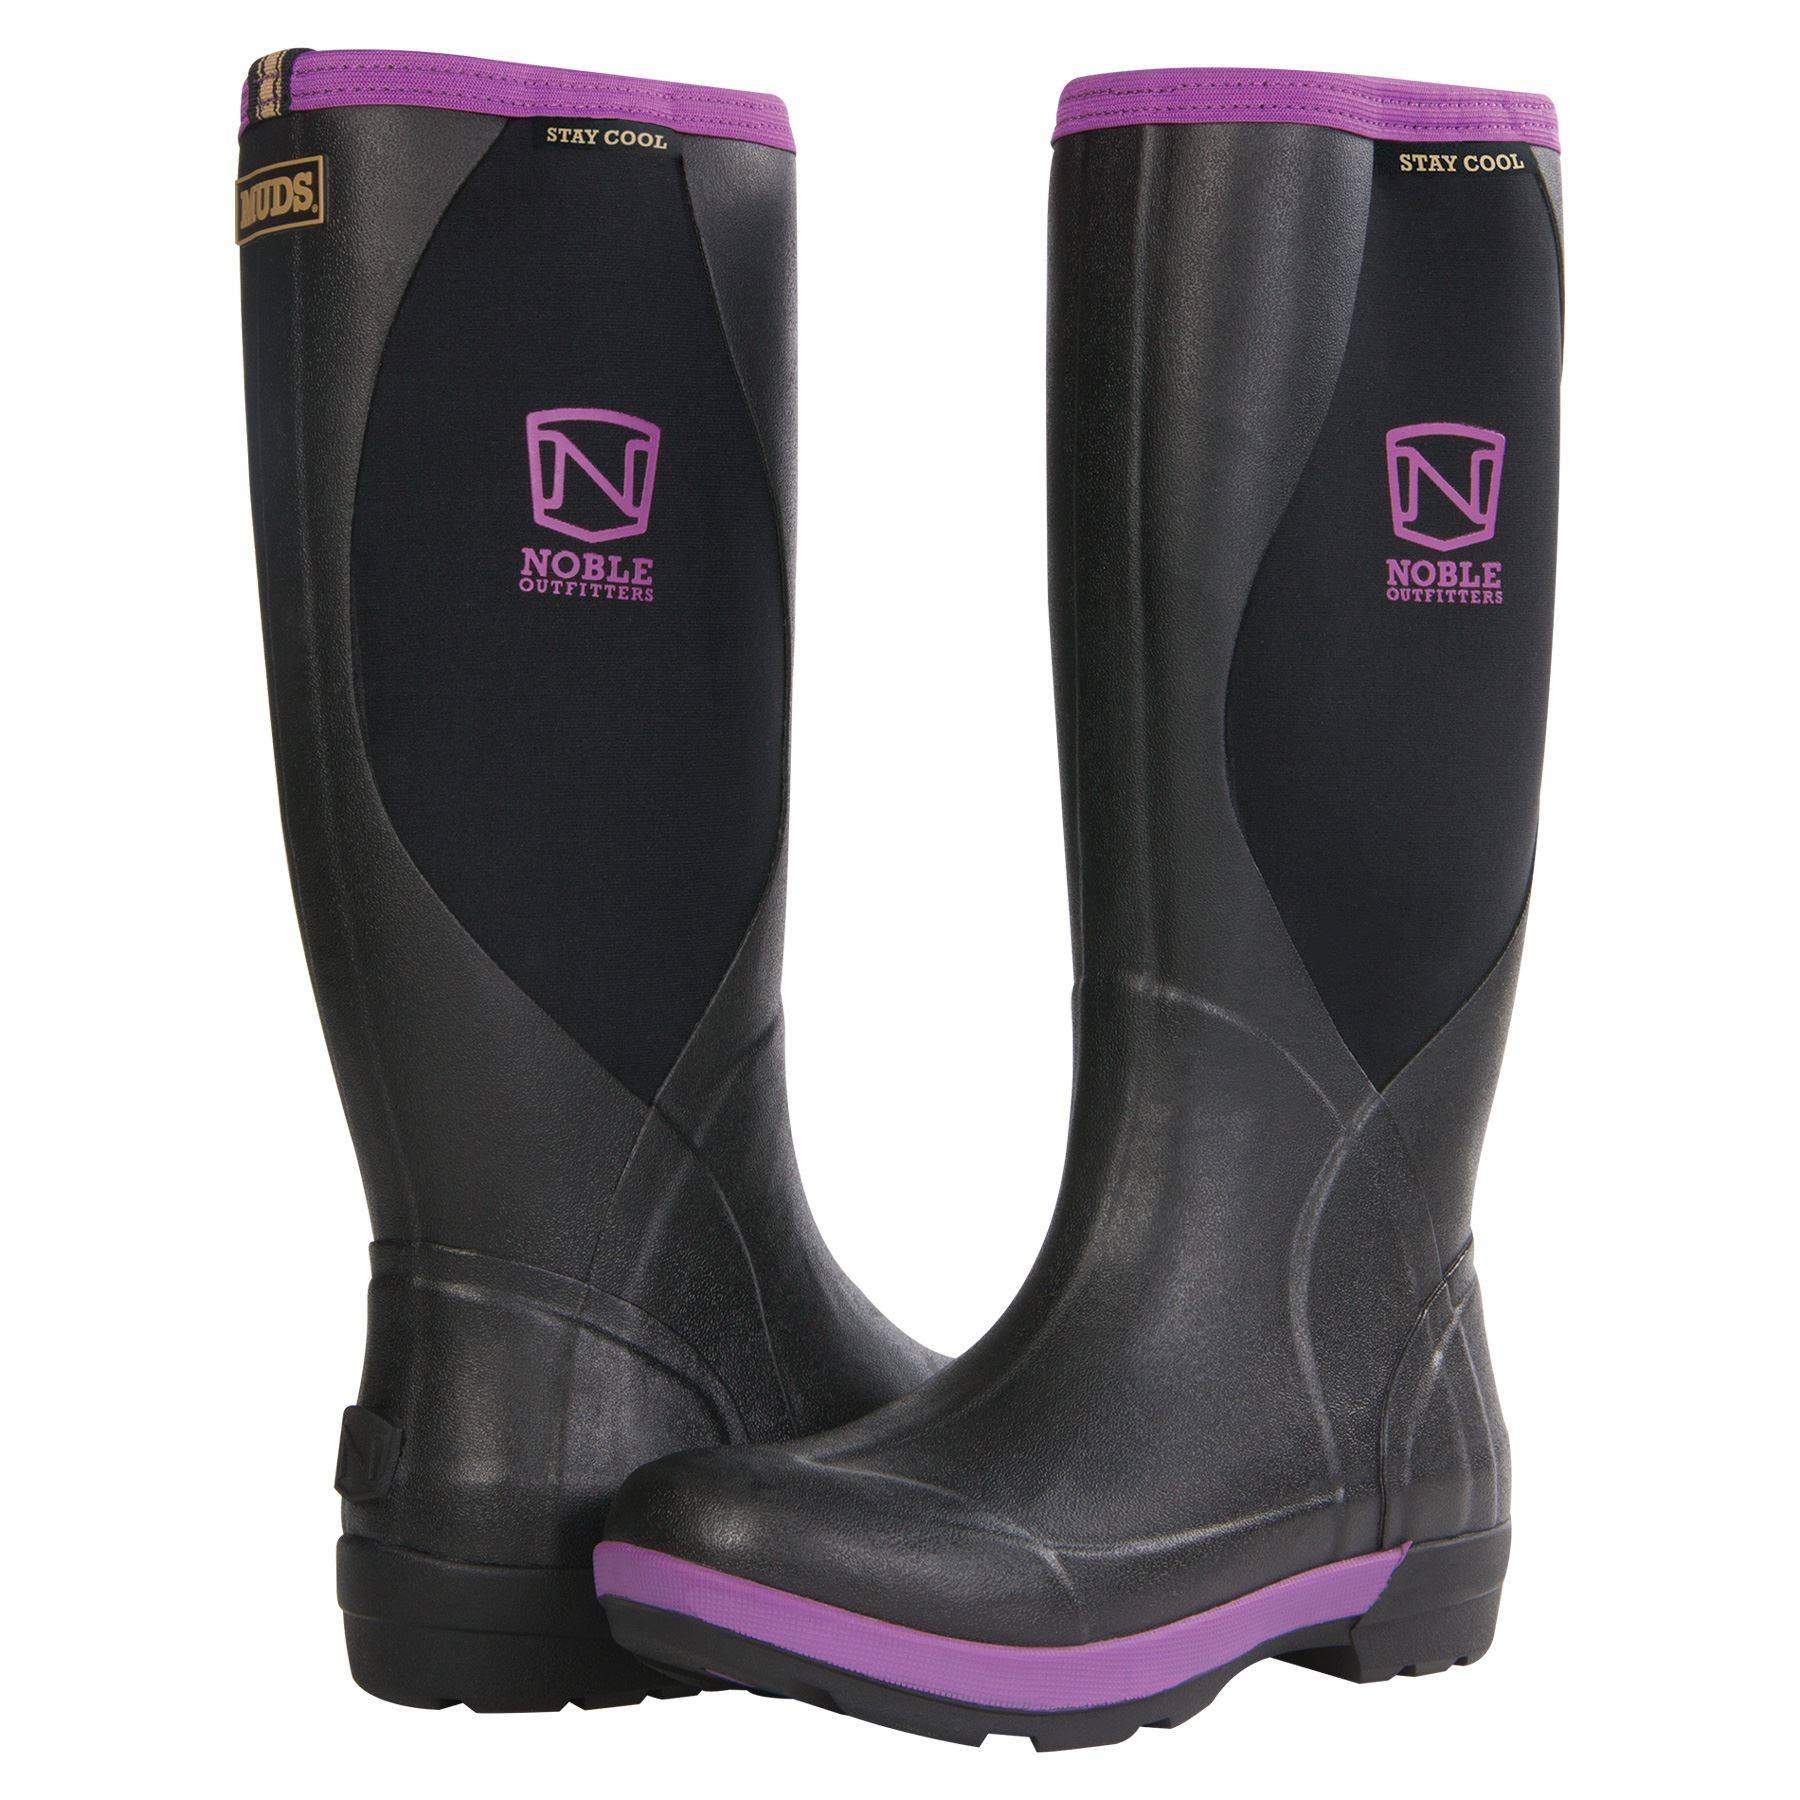 Noble Outfitters Women/'s Muds Stay Cool High Boots Size 10 Same Day Shipping